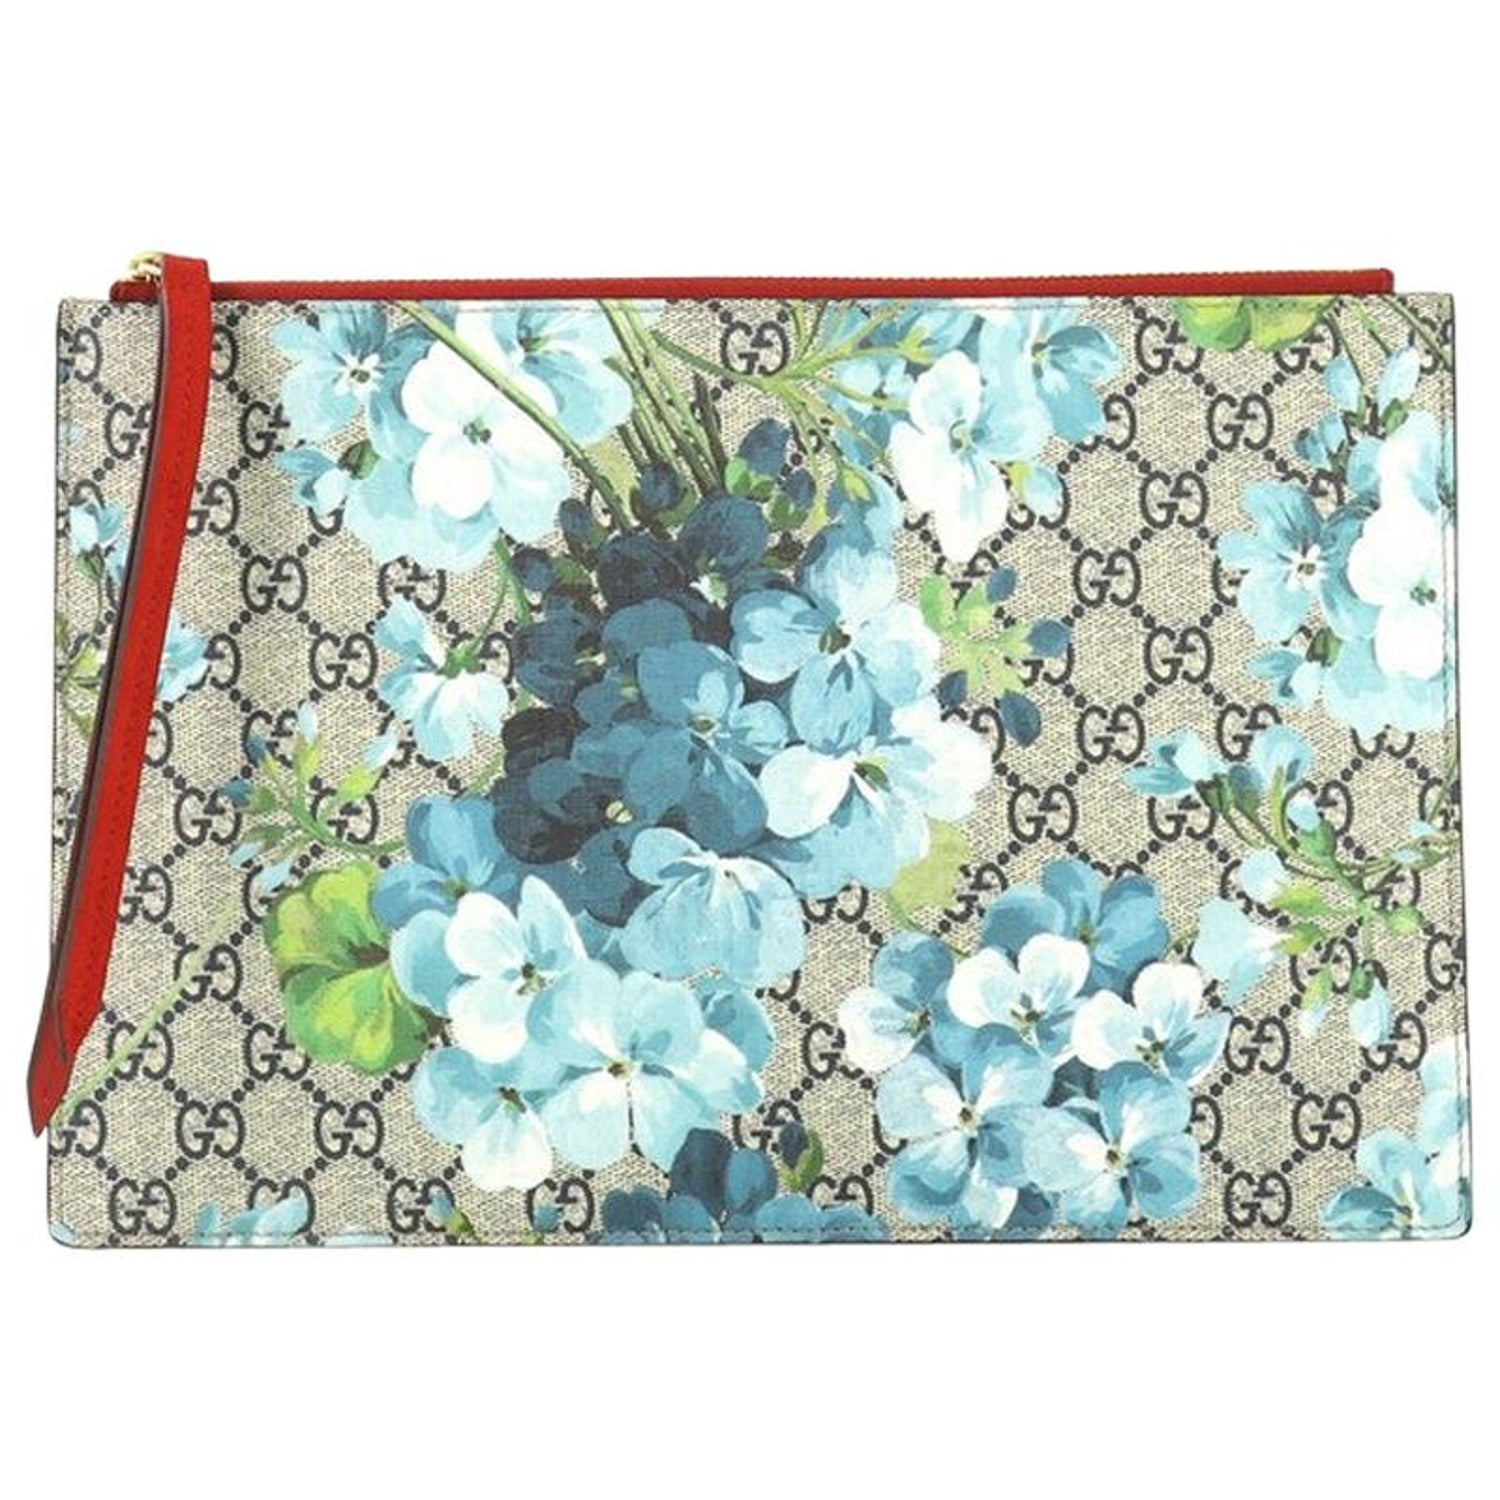 7ed21f6d571 Gucci Zipped Pouch Blooms Print GG Coated Canvas Large at 1stdibs